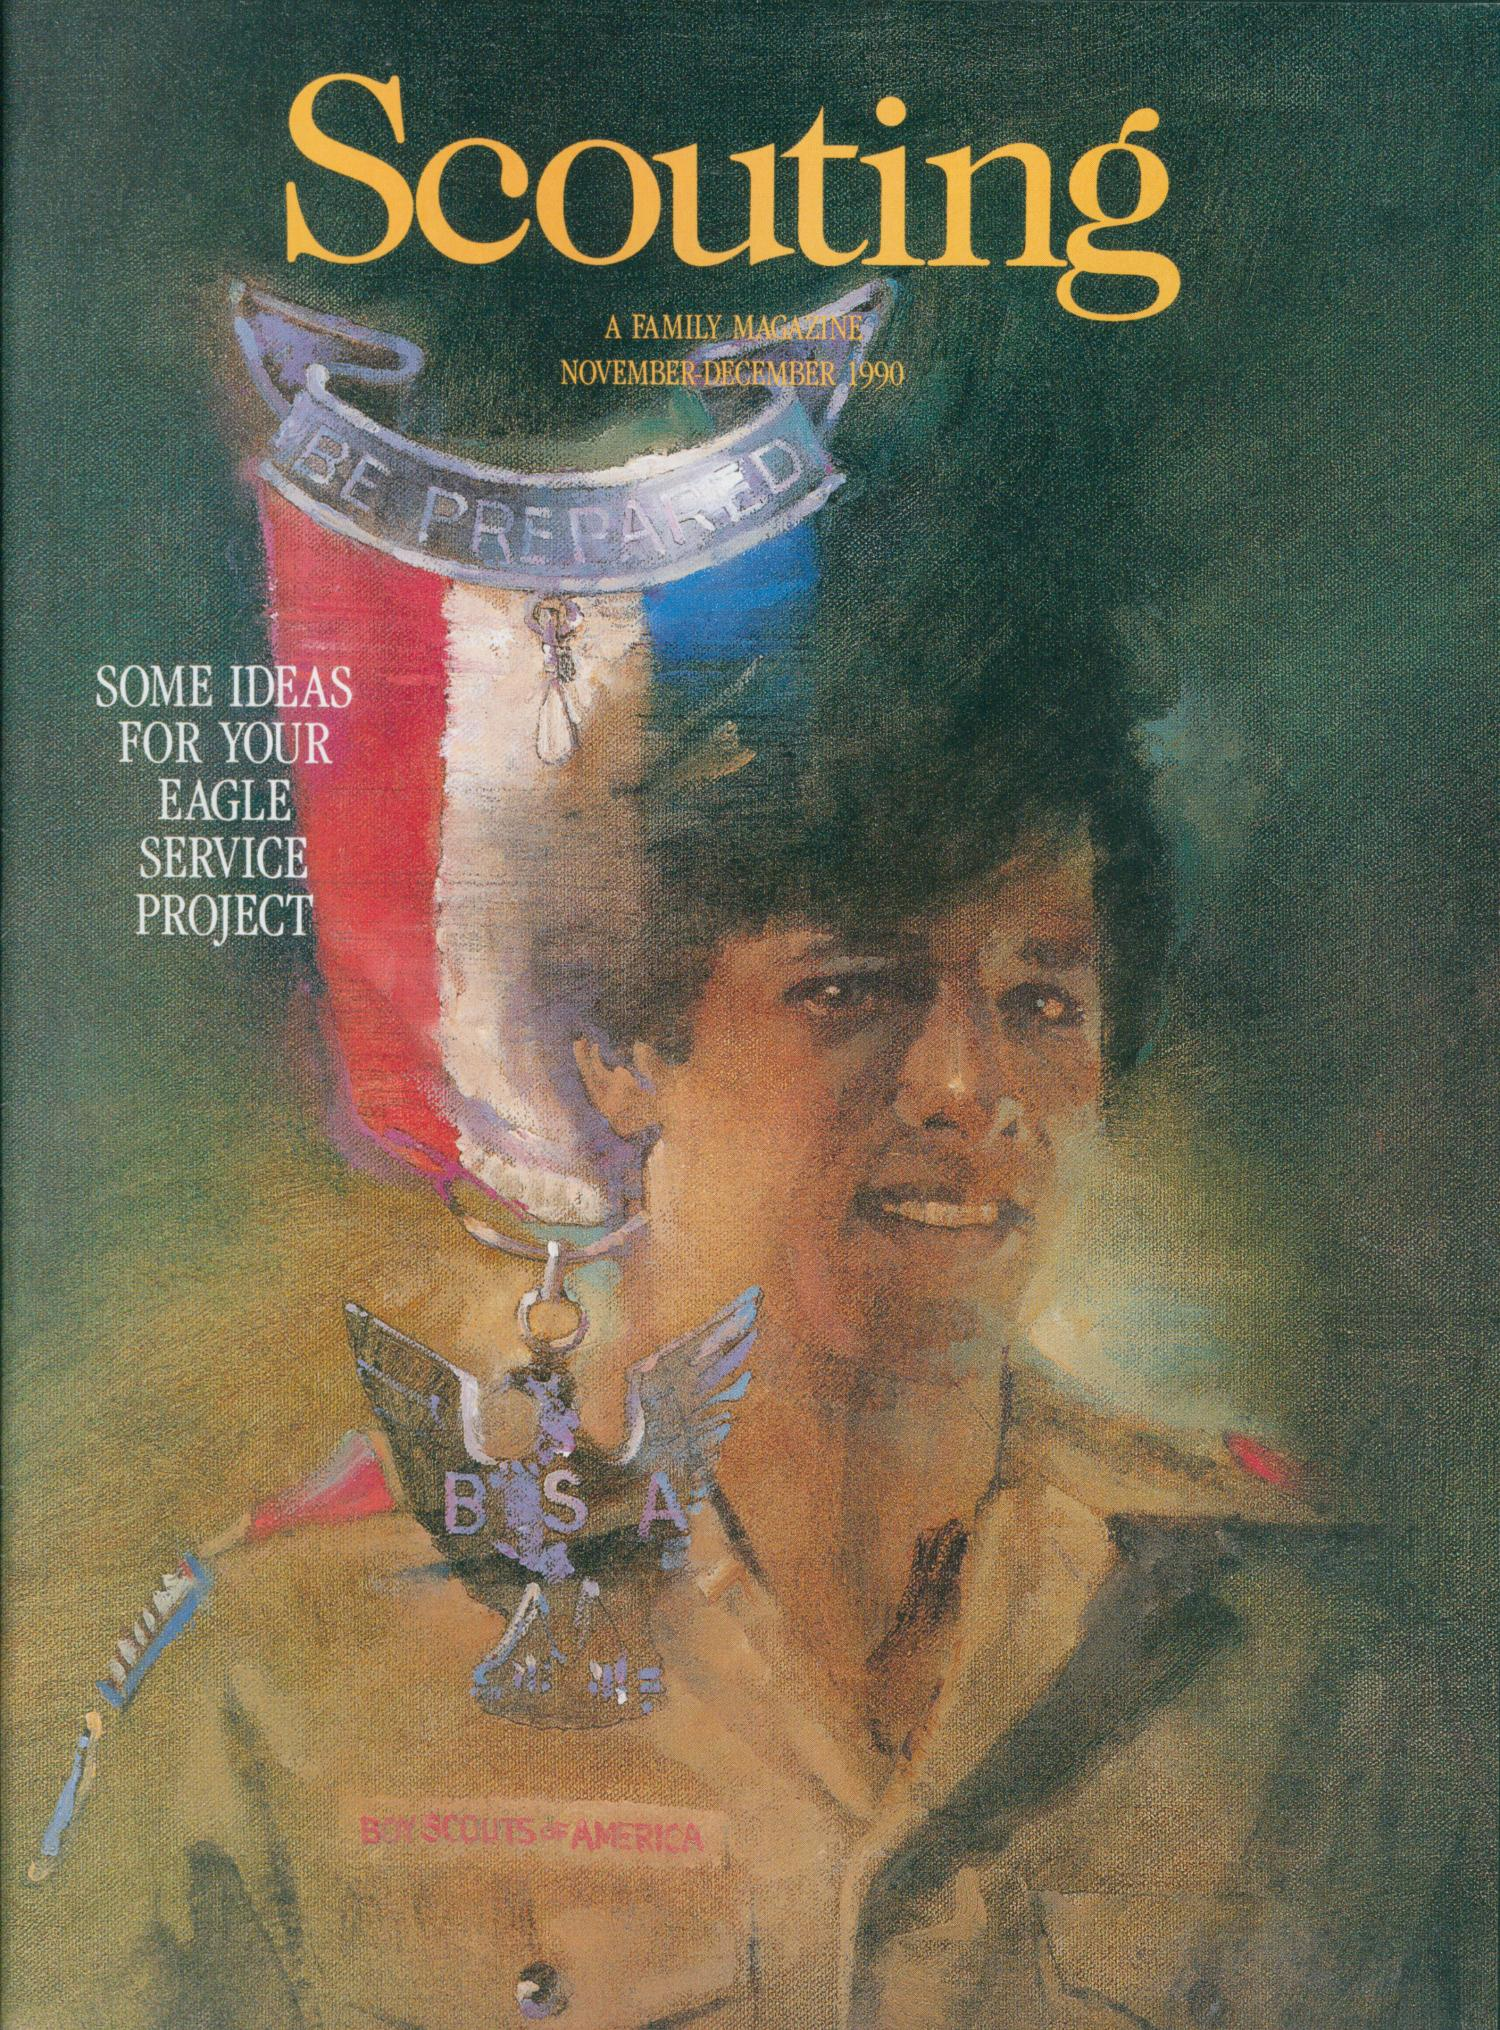 Scouting, Volume 78, Number 6, November-December 1990                                                                                                      Front Cover